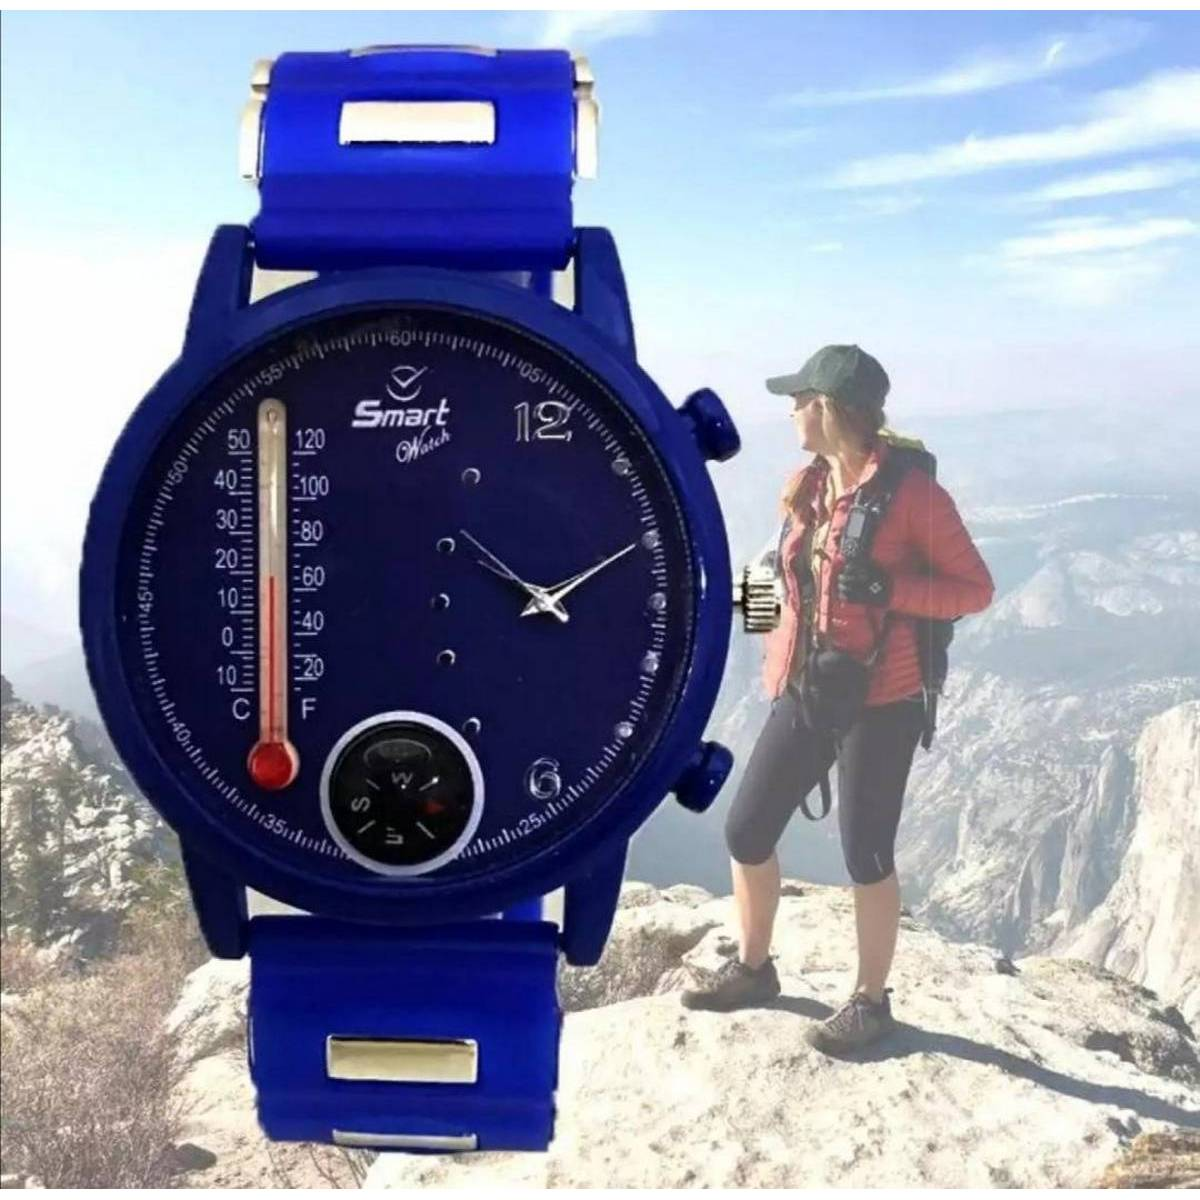 Blue watch Temperature - Stylish High Quality Water Proof Men Round Case Rubber Strap Watch for Gift Party Casual Wear - ( APK )